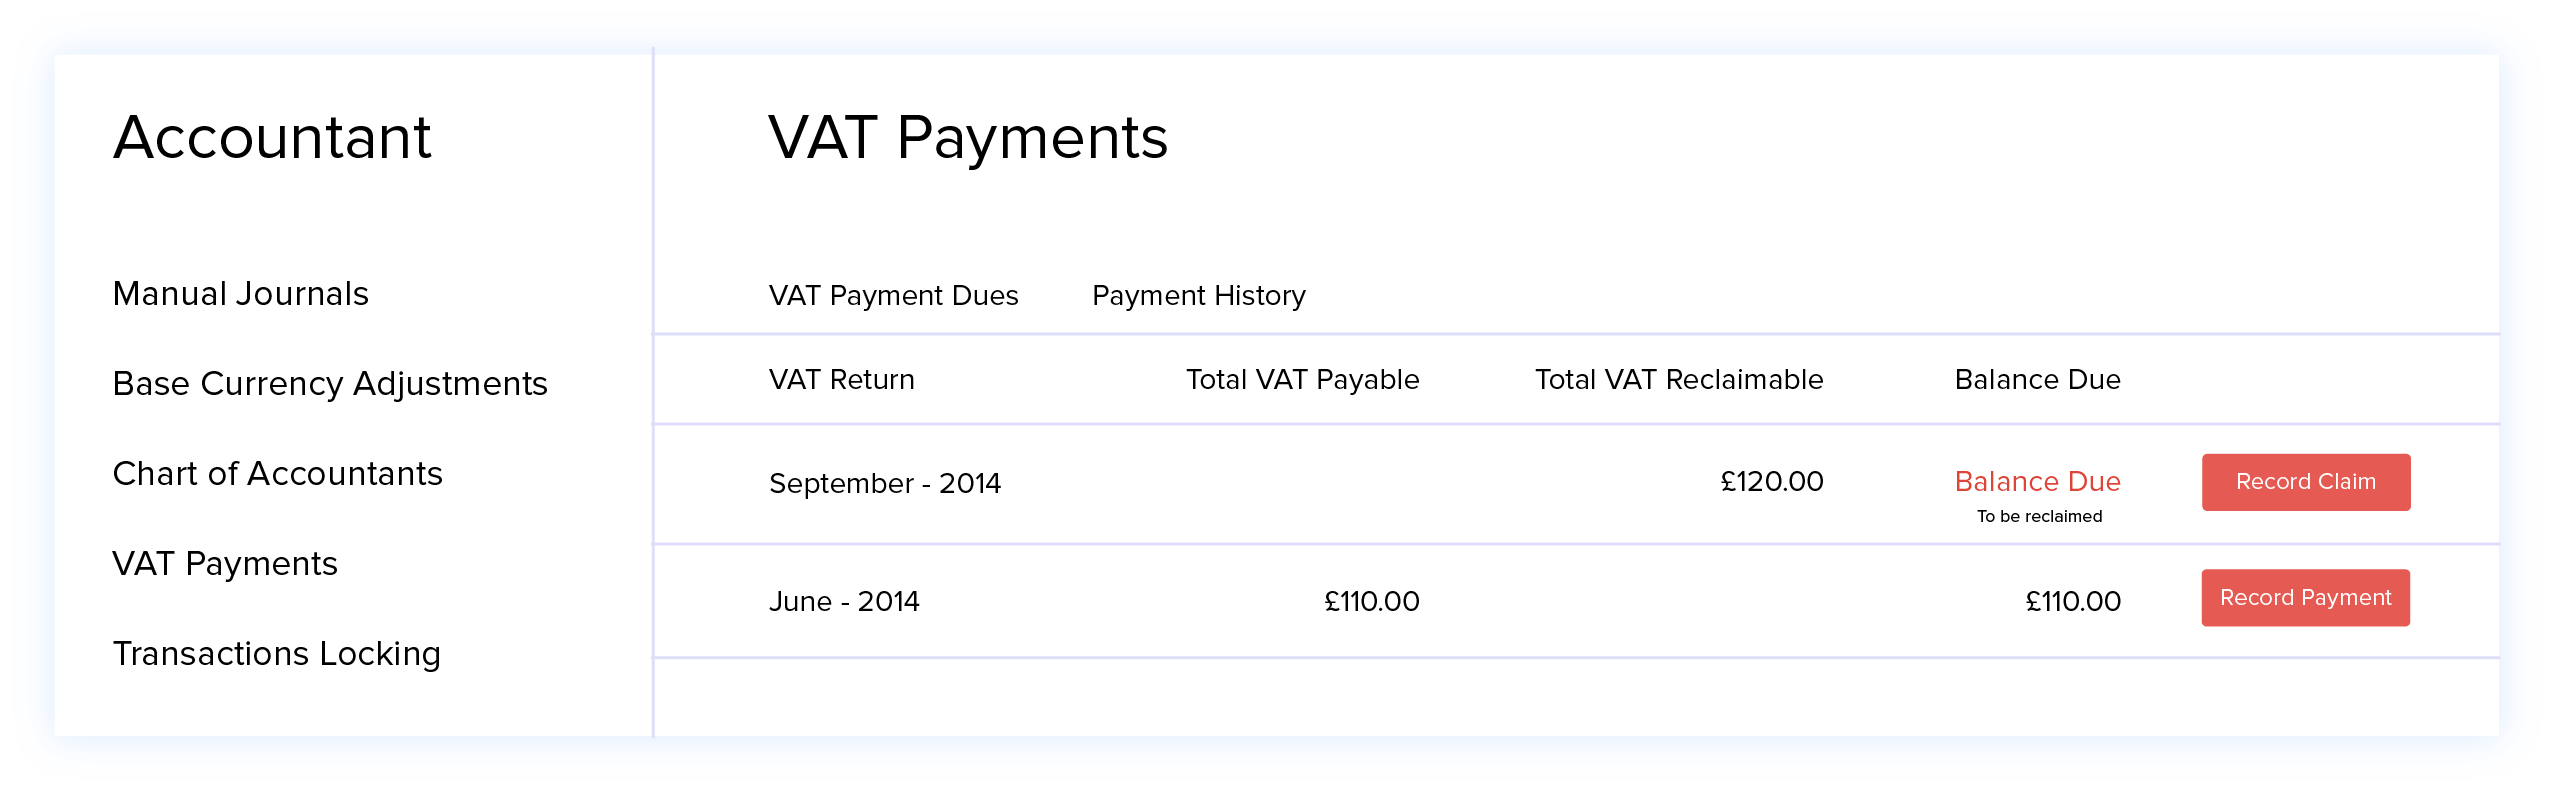 VAT Payments - VAT Accounting Software | Zoho Books